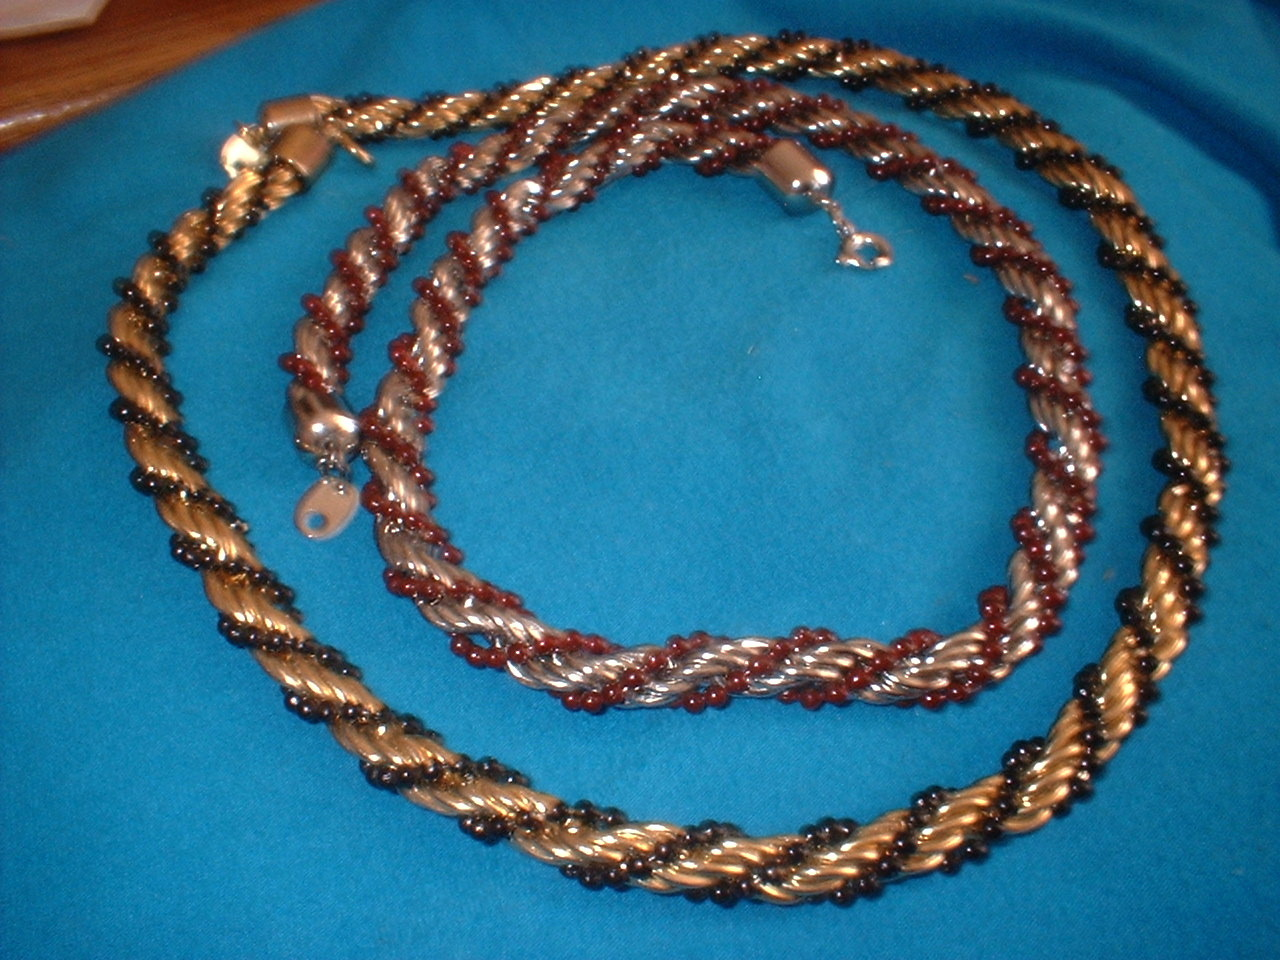 Twistey bead and metal necklace lot